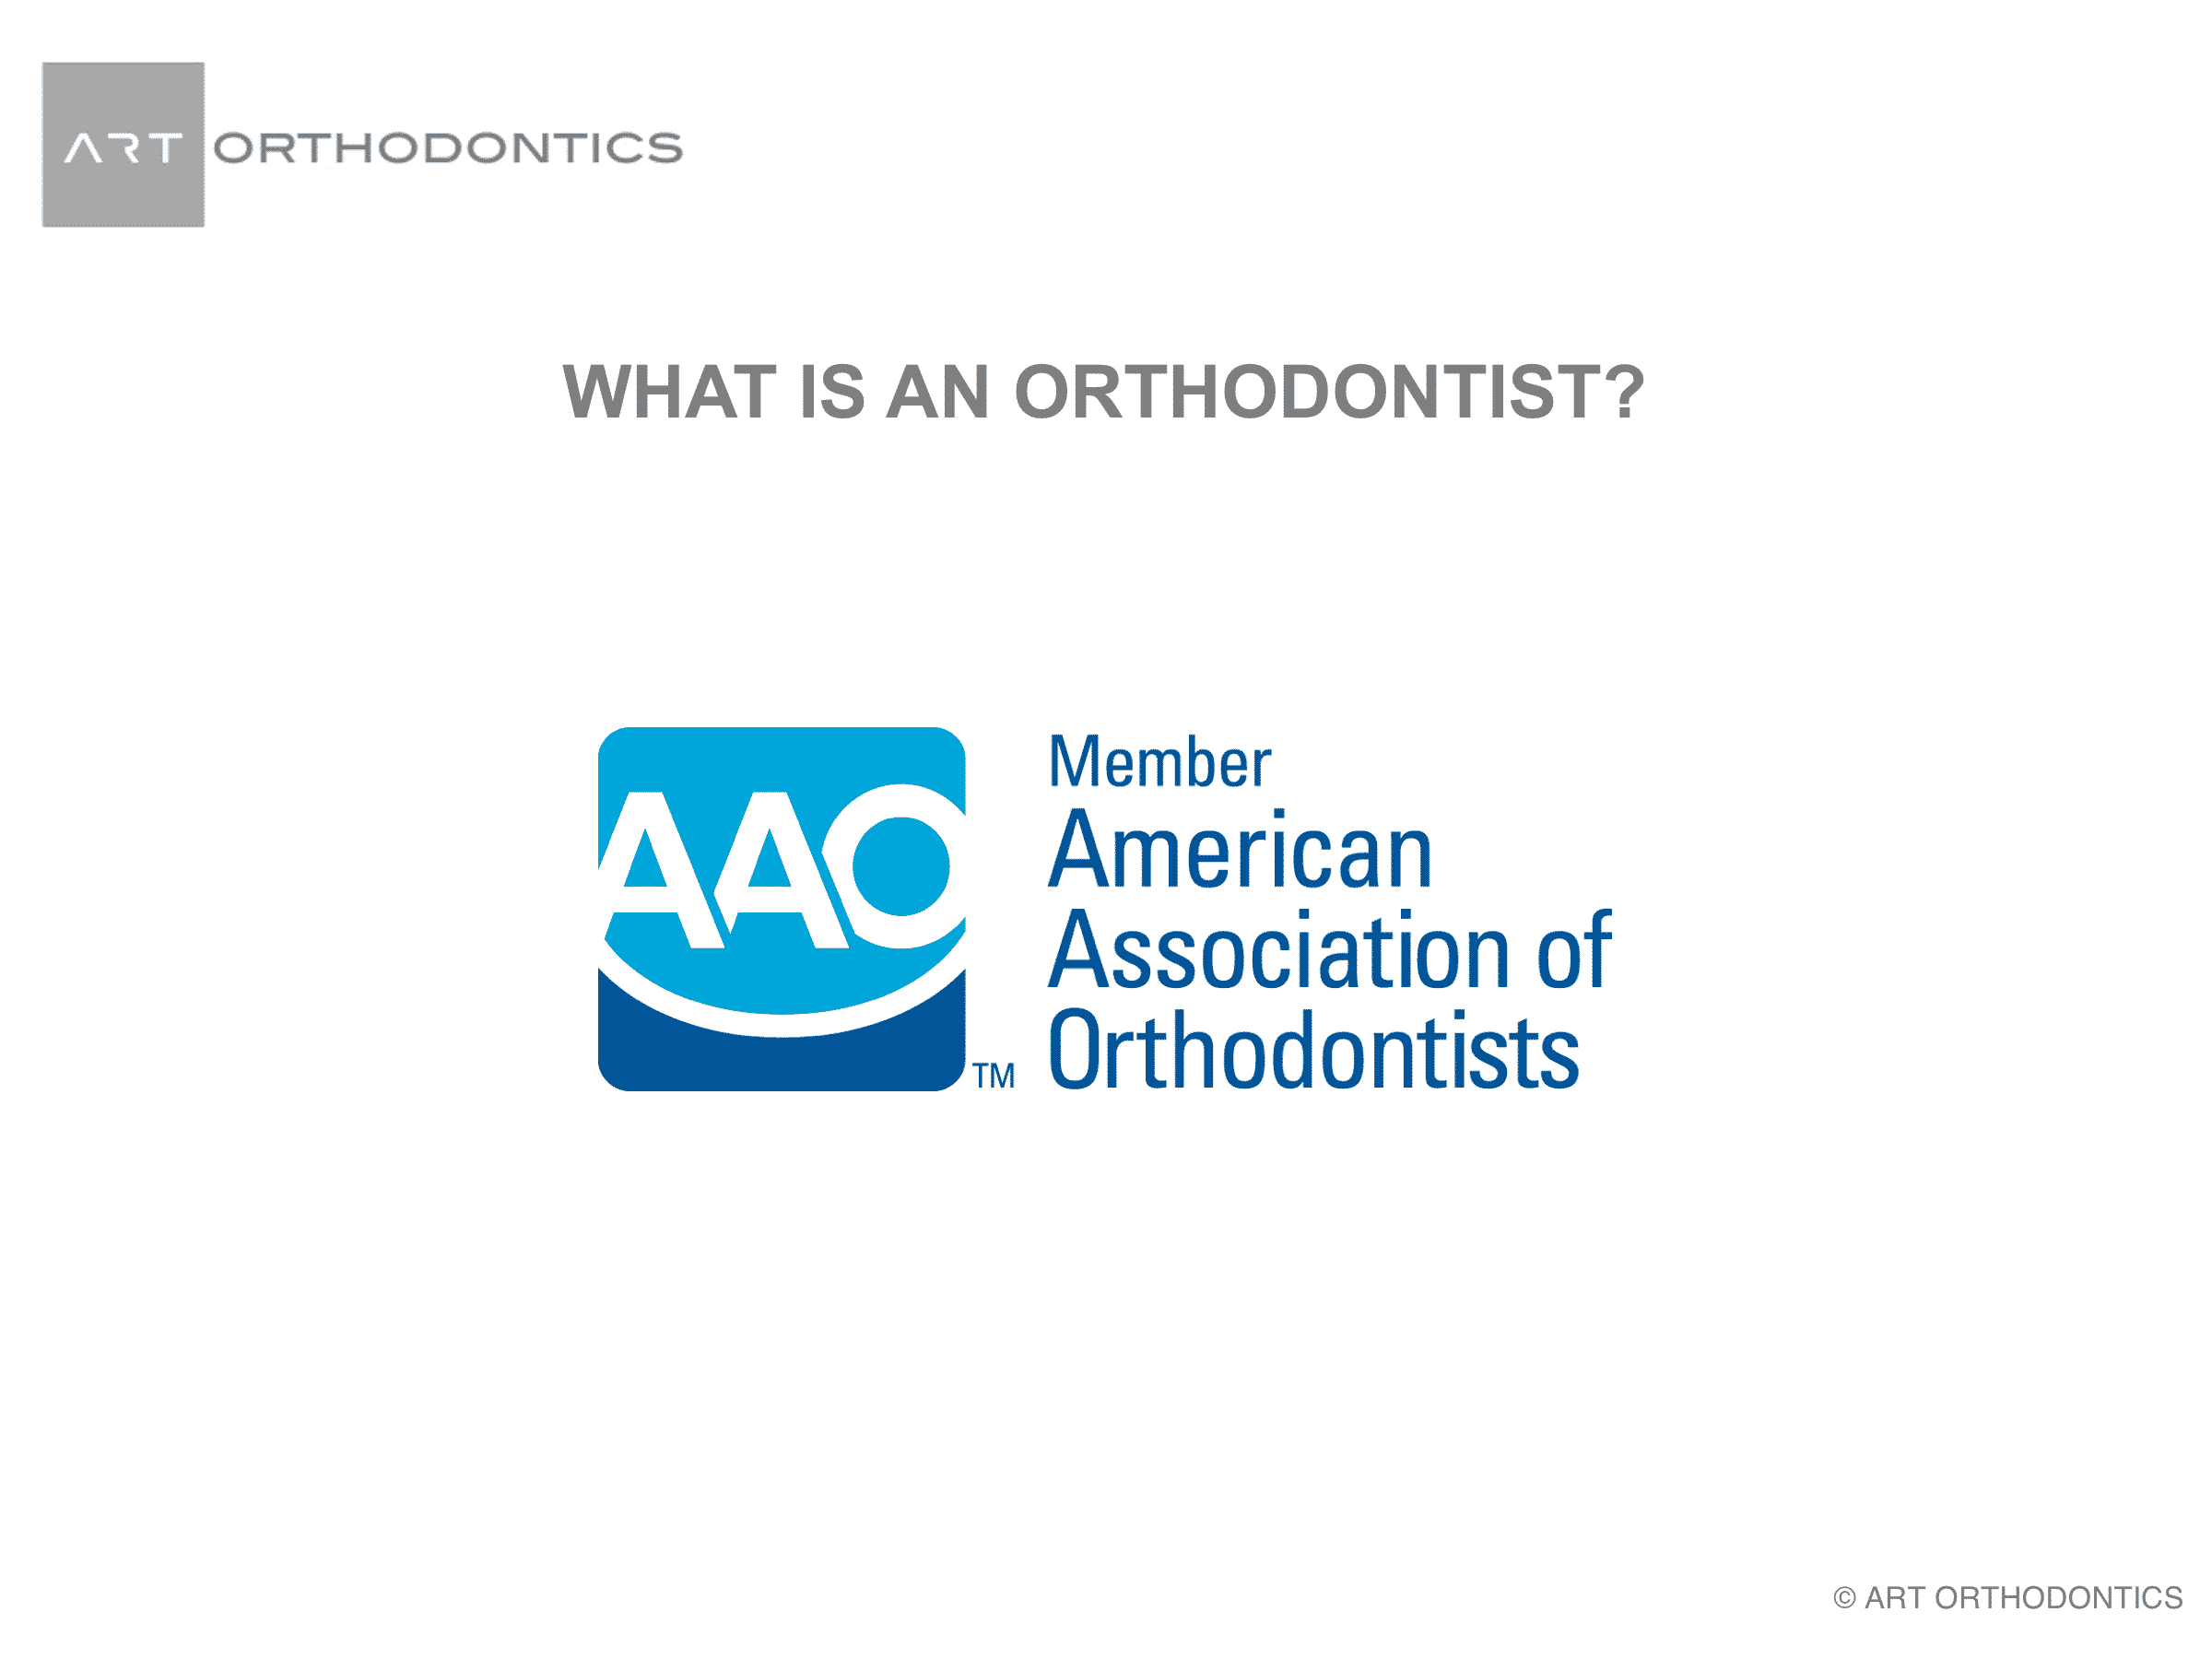 American Association of Orthodontists (AAO) logo